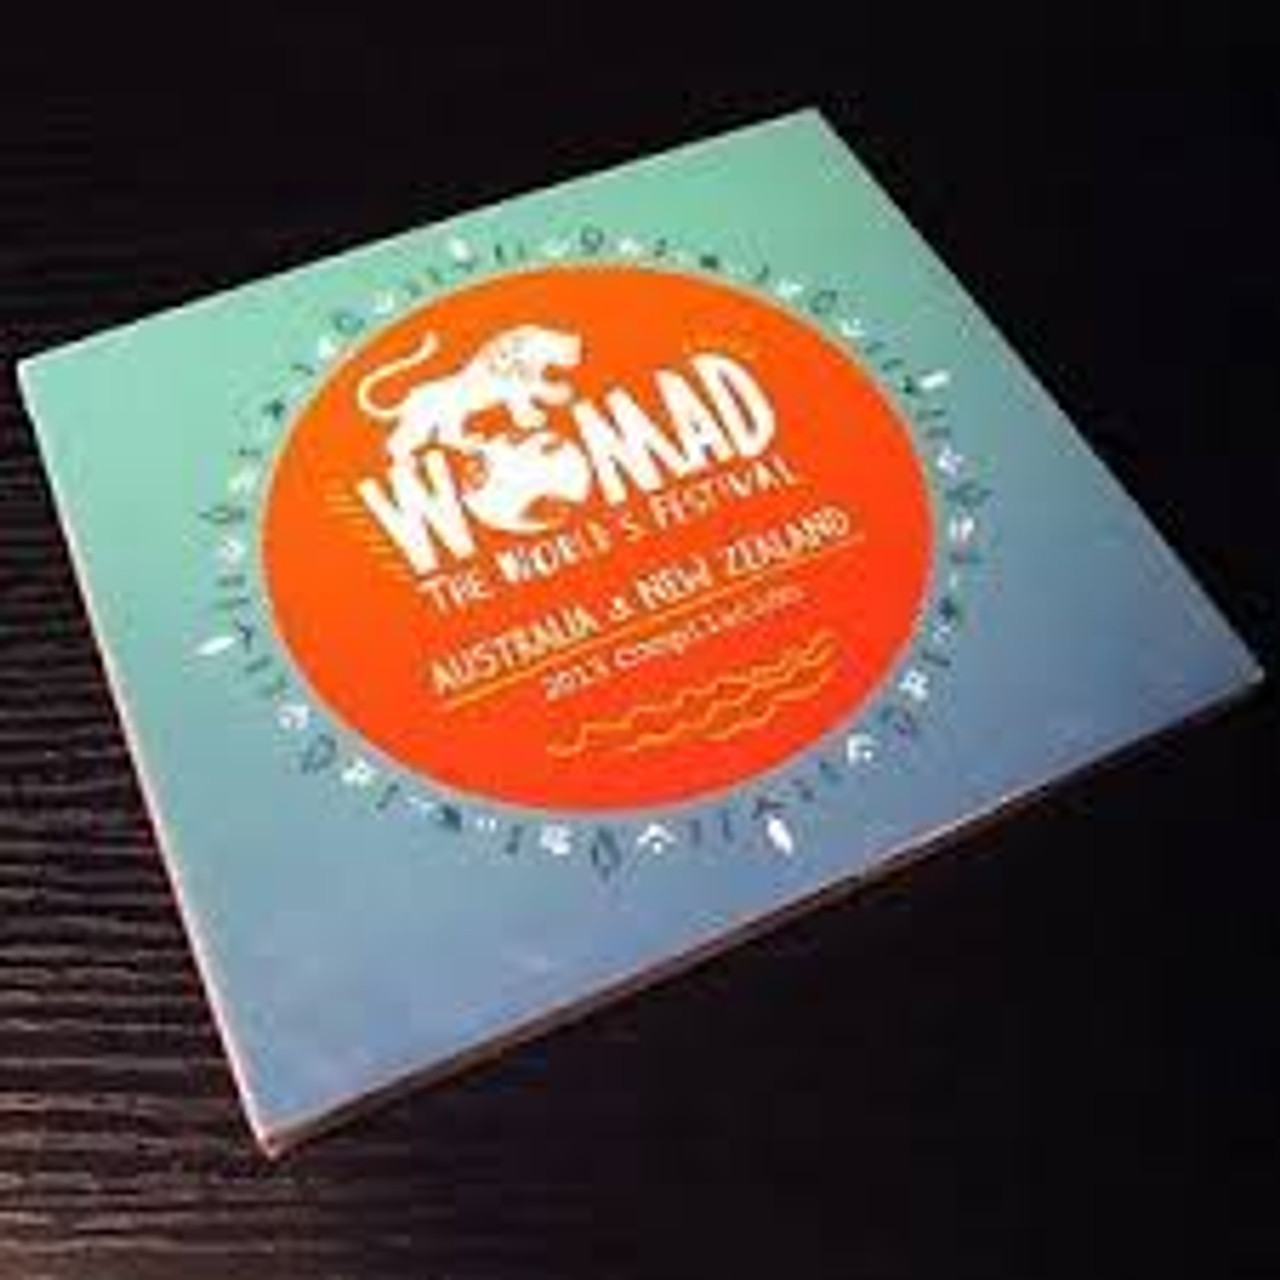 Womad The World's Festival (Australia & New Zealand 2013 Compilation) -  Various - CD *NEW*